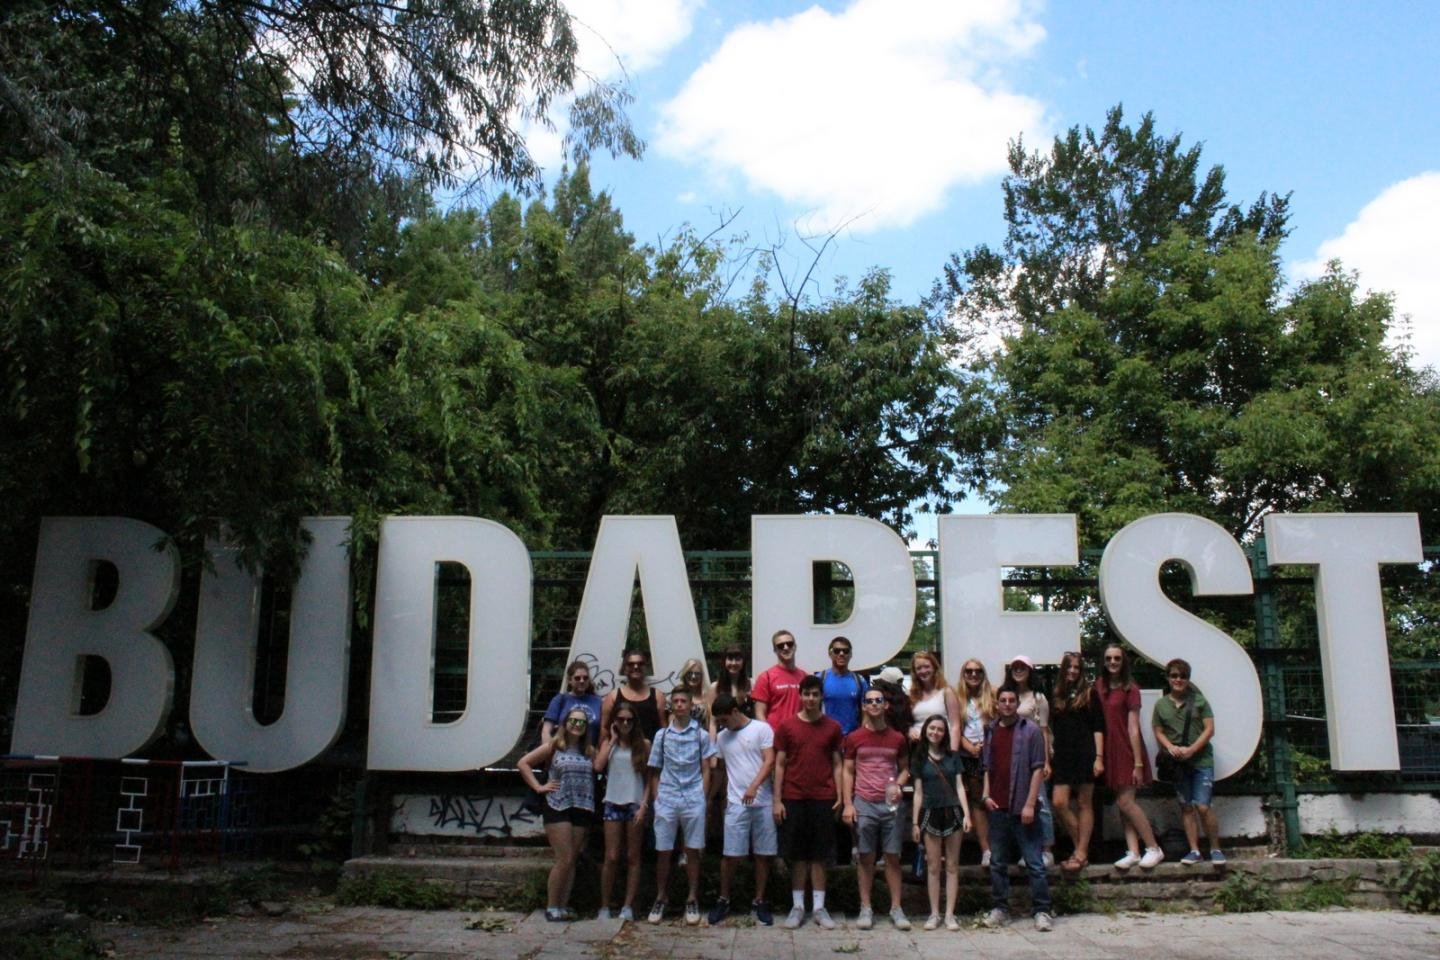 Teen travelers explore Budapest during summer youth travel program